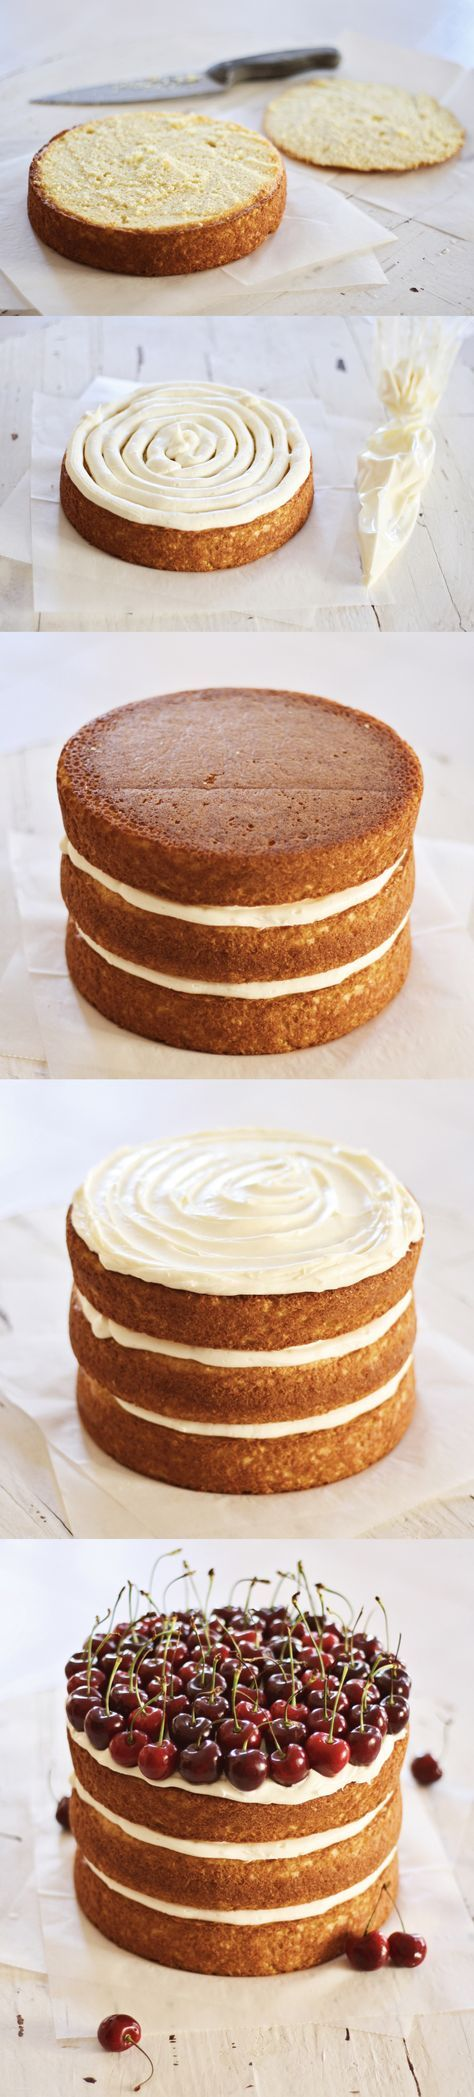 How To Do A Naked Cake | Joanna Meyer via Kristi Murphy